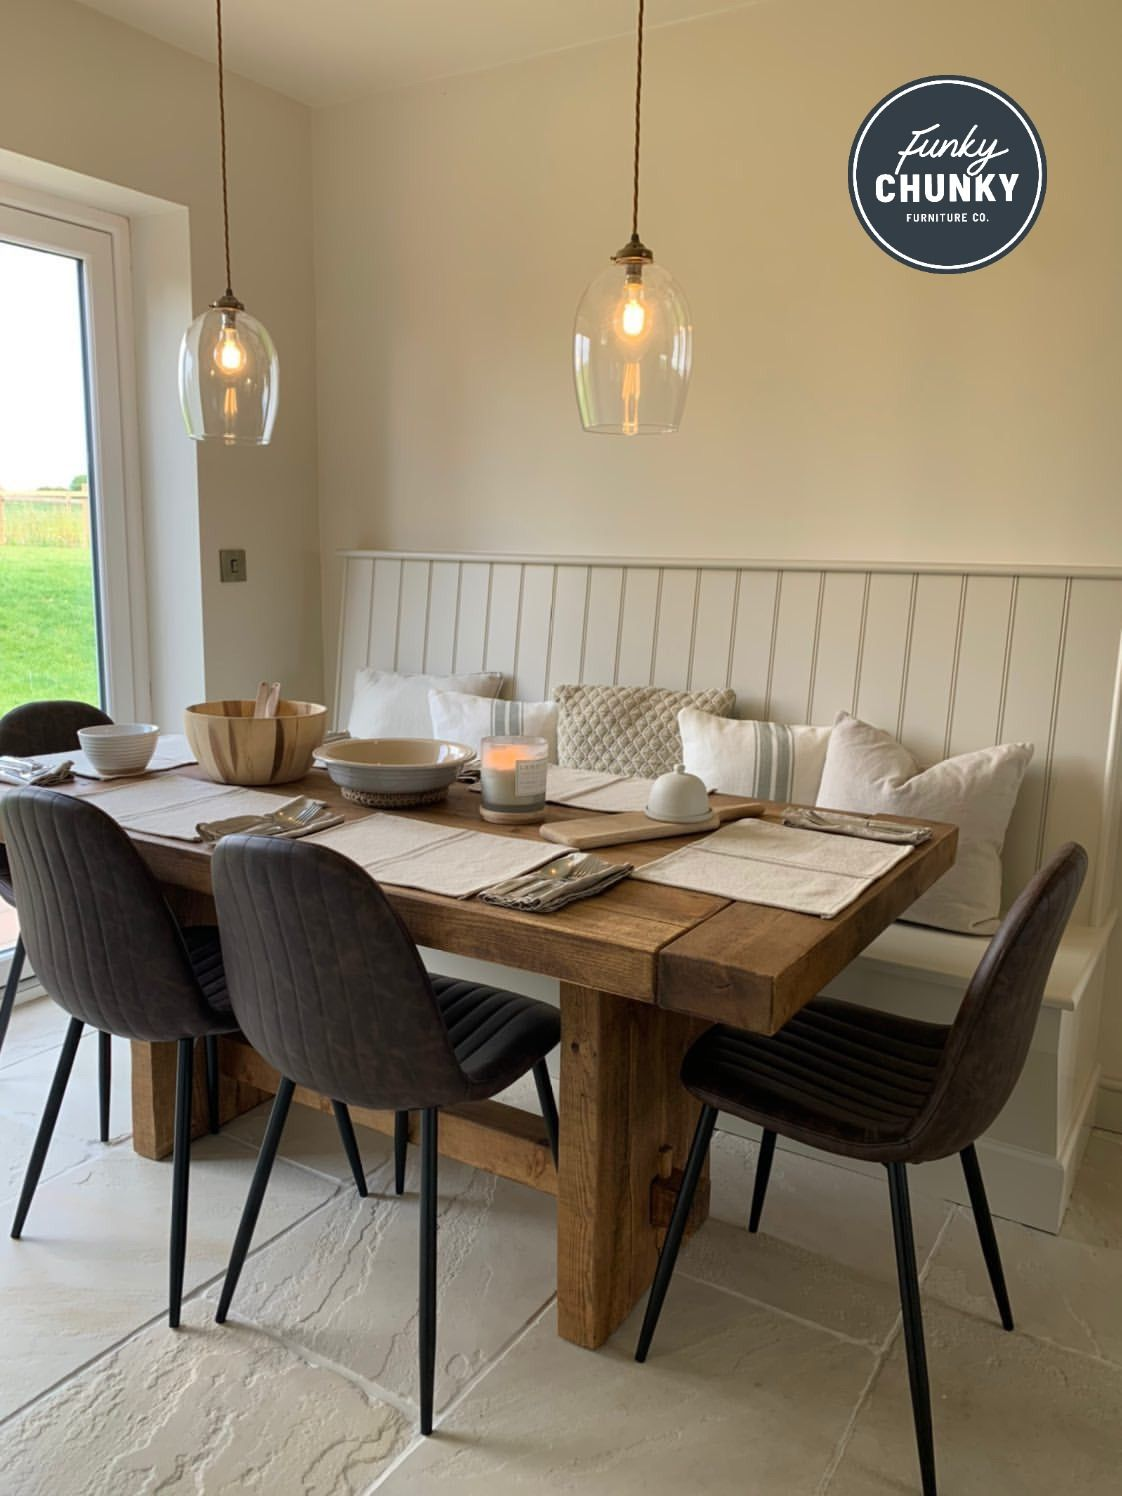 Derwent Dining Table - Handmade in the UK